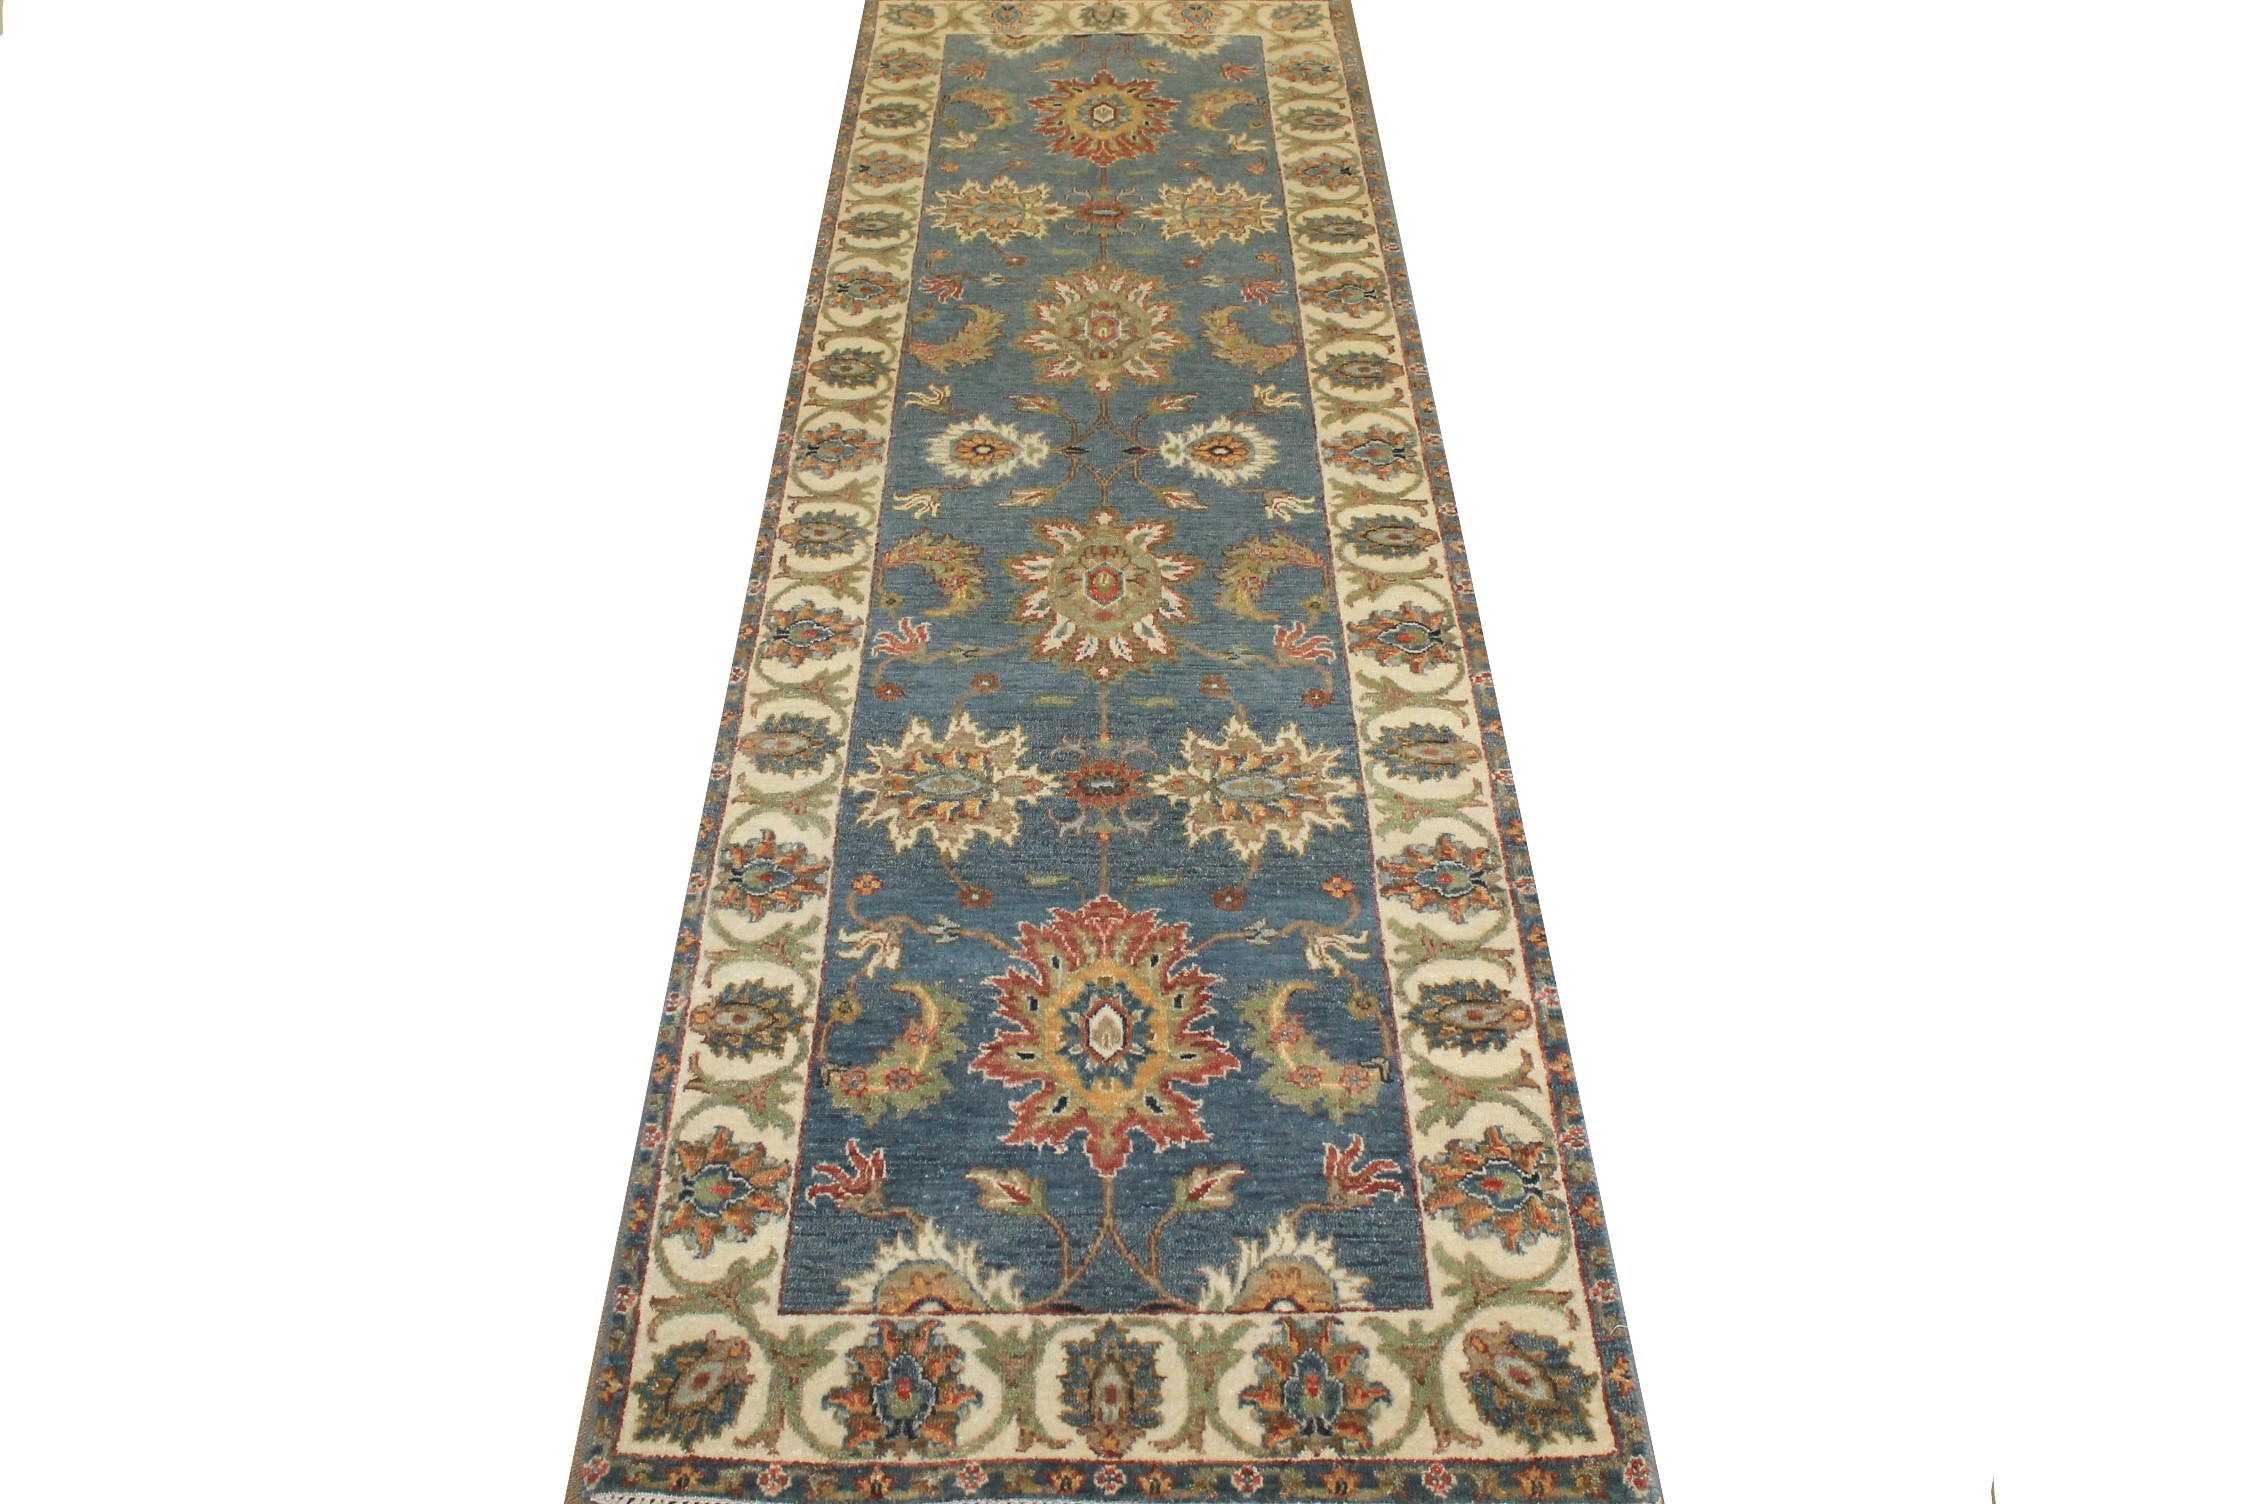 6 ft. Runner Traditional Hand Knotted Wool Area Rug - MR024816